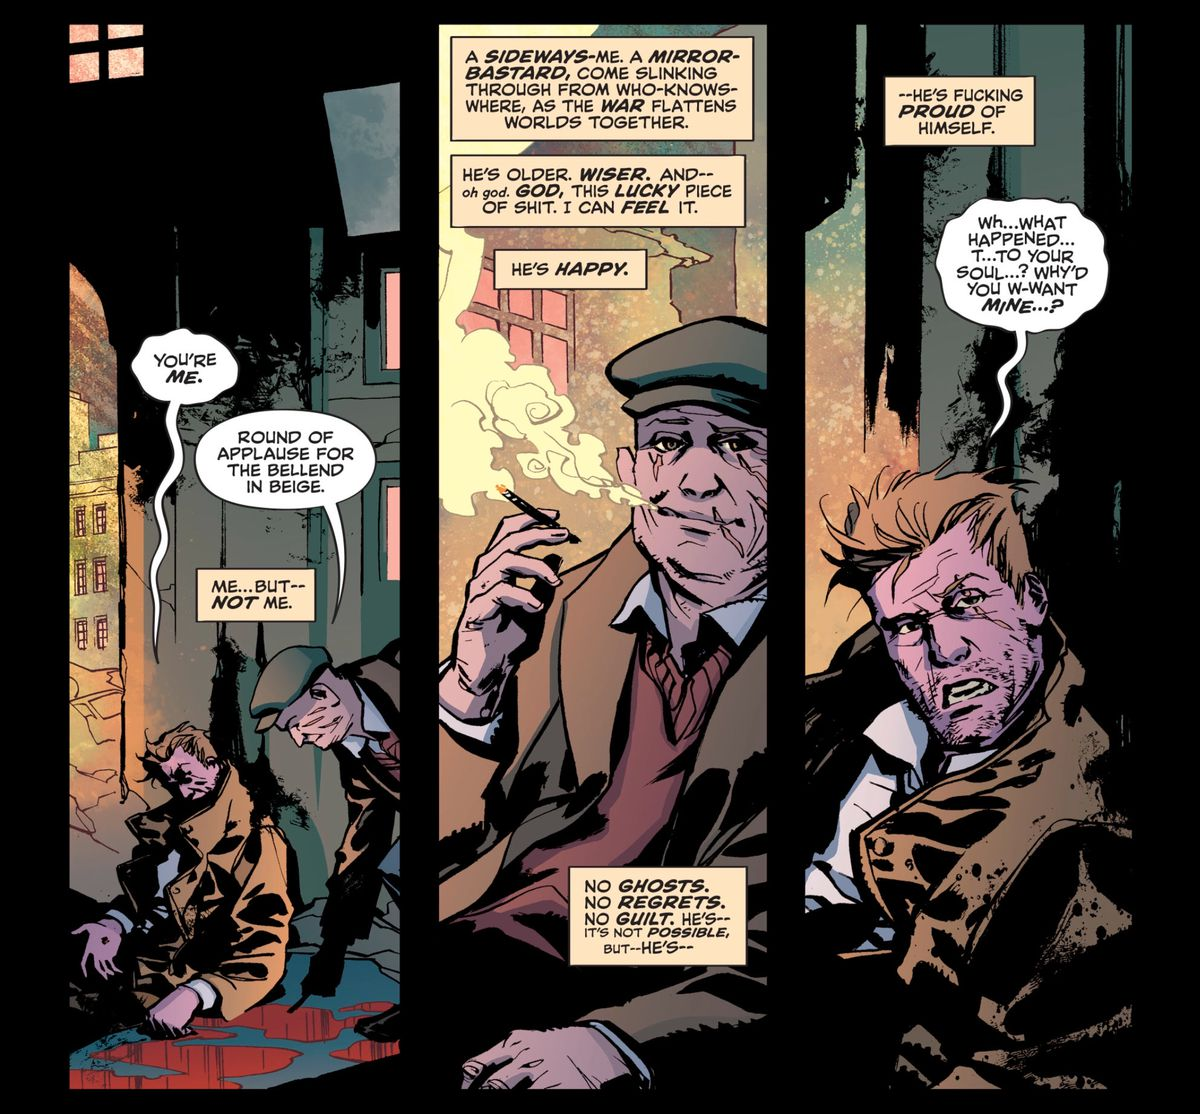 Constantine meets an old man in a newsboy cap, with scars across his face and a long cigarette in his fingers, and realizes it's an older version of himself, in Hellblazer #1, DC Comics (2019).